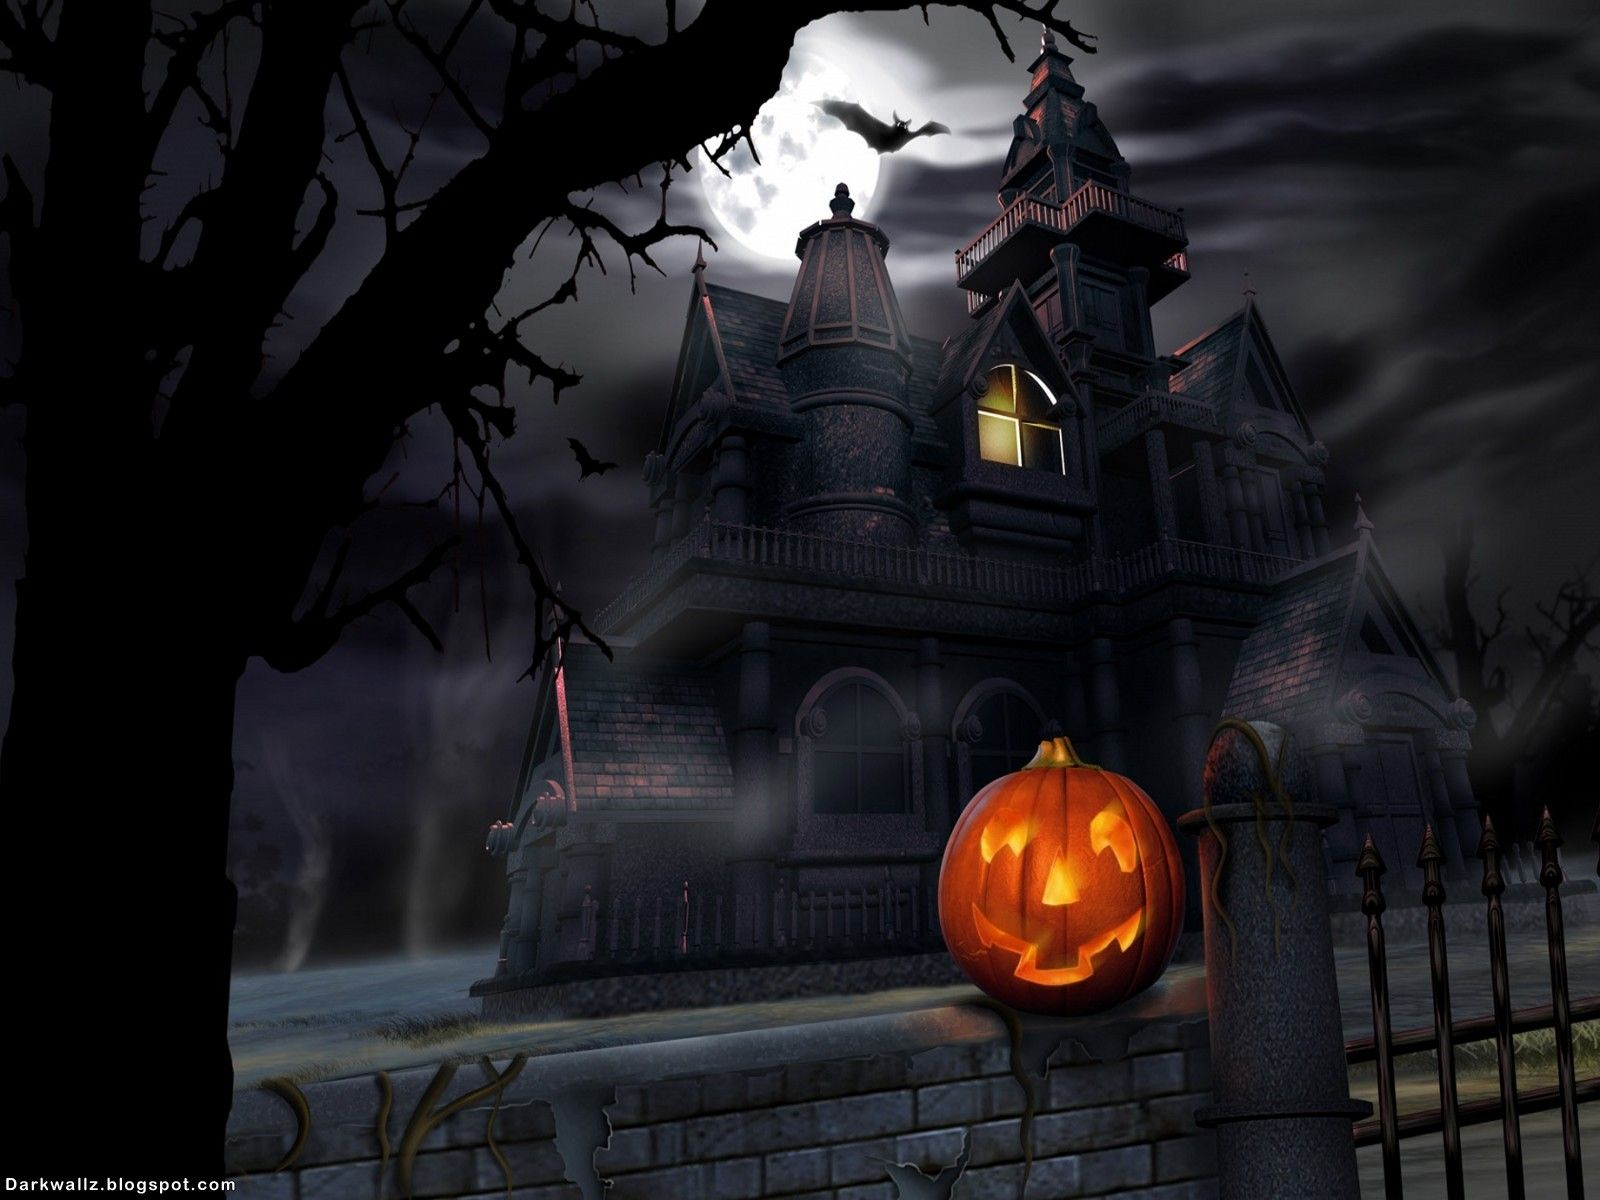 Hd wallpapers and background images Dark Halloween Wallpapers 4k Hd Dark Halloween Backgrounds On Wallpaperbat